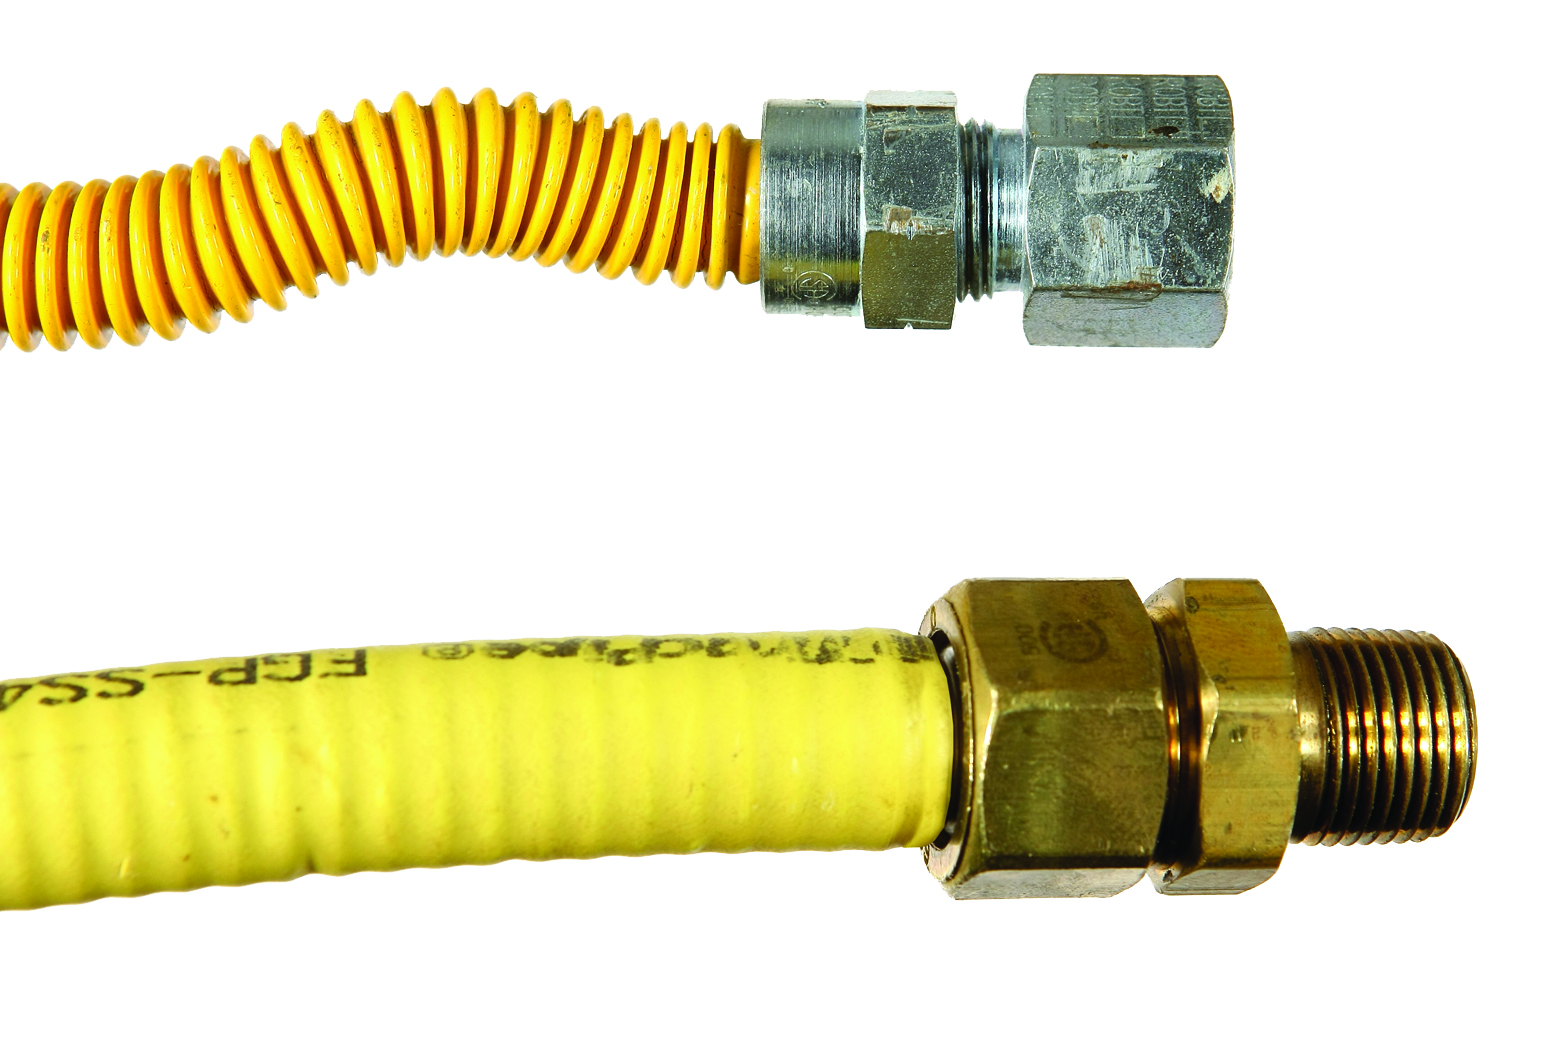 Yellow Plastic Propane Gas Line - Best Wallpaper Plastic